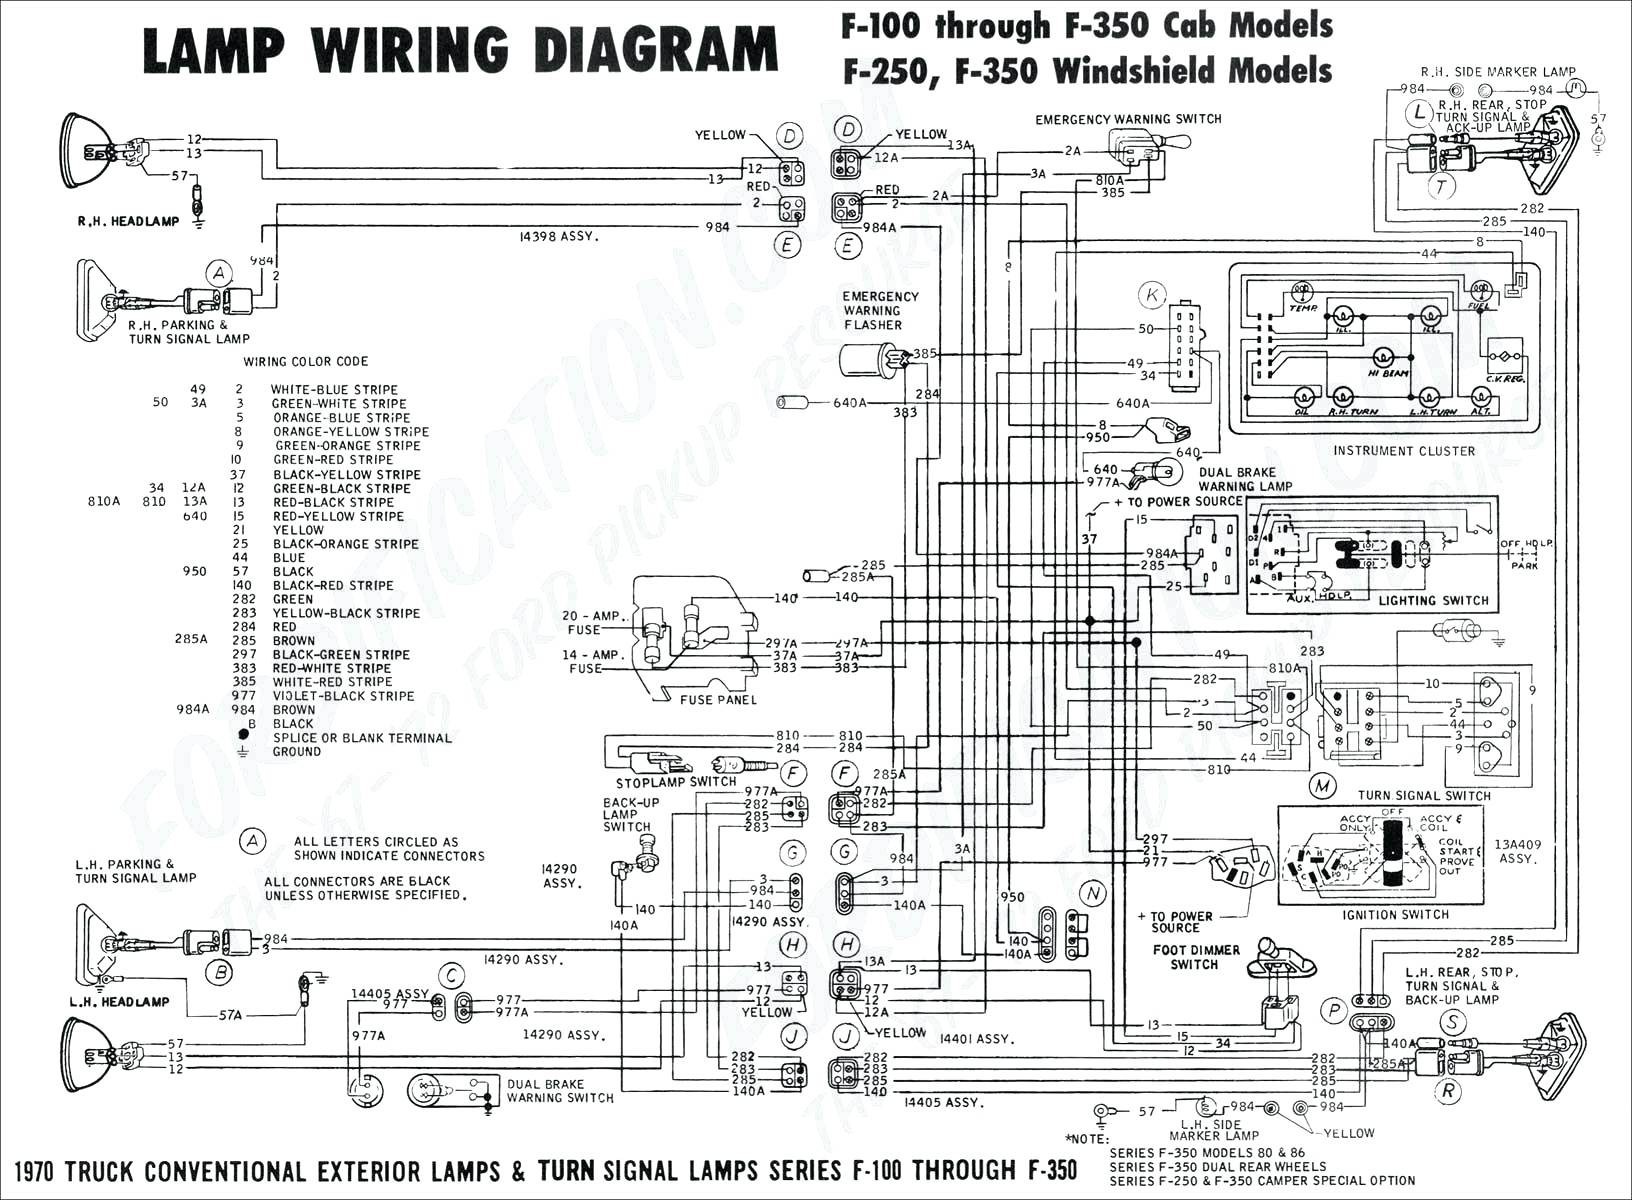 1996 Chevy S10 Wiring Diagram 1997 Chevy S10 Wiring